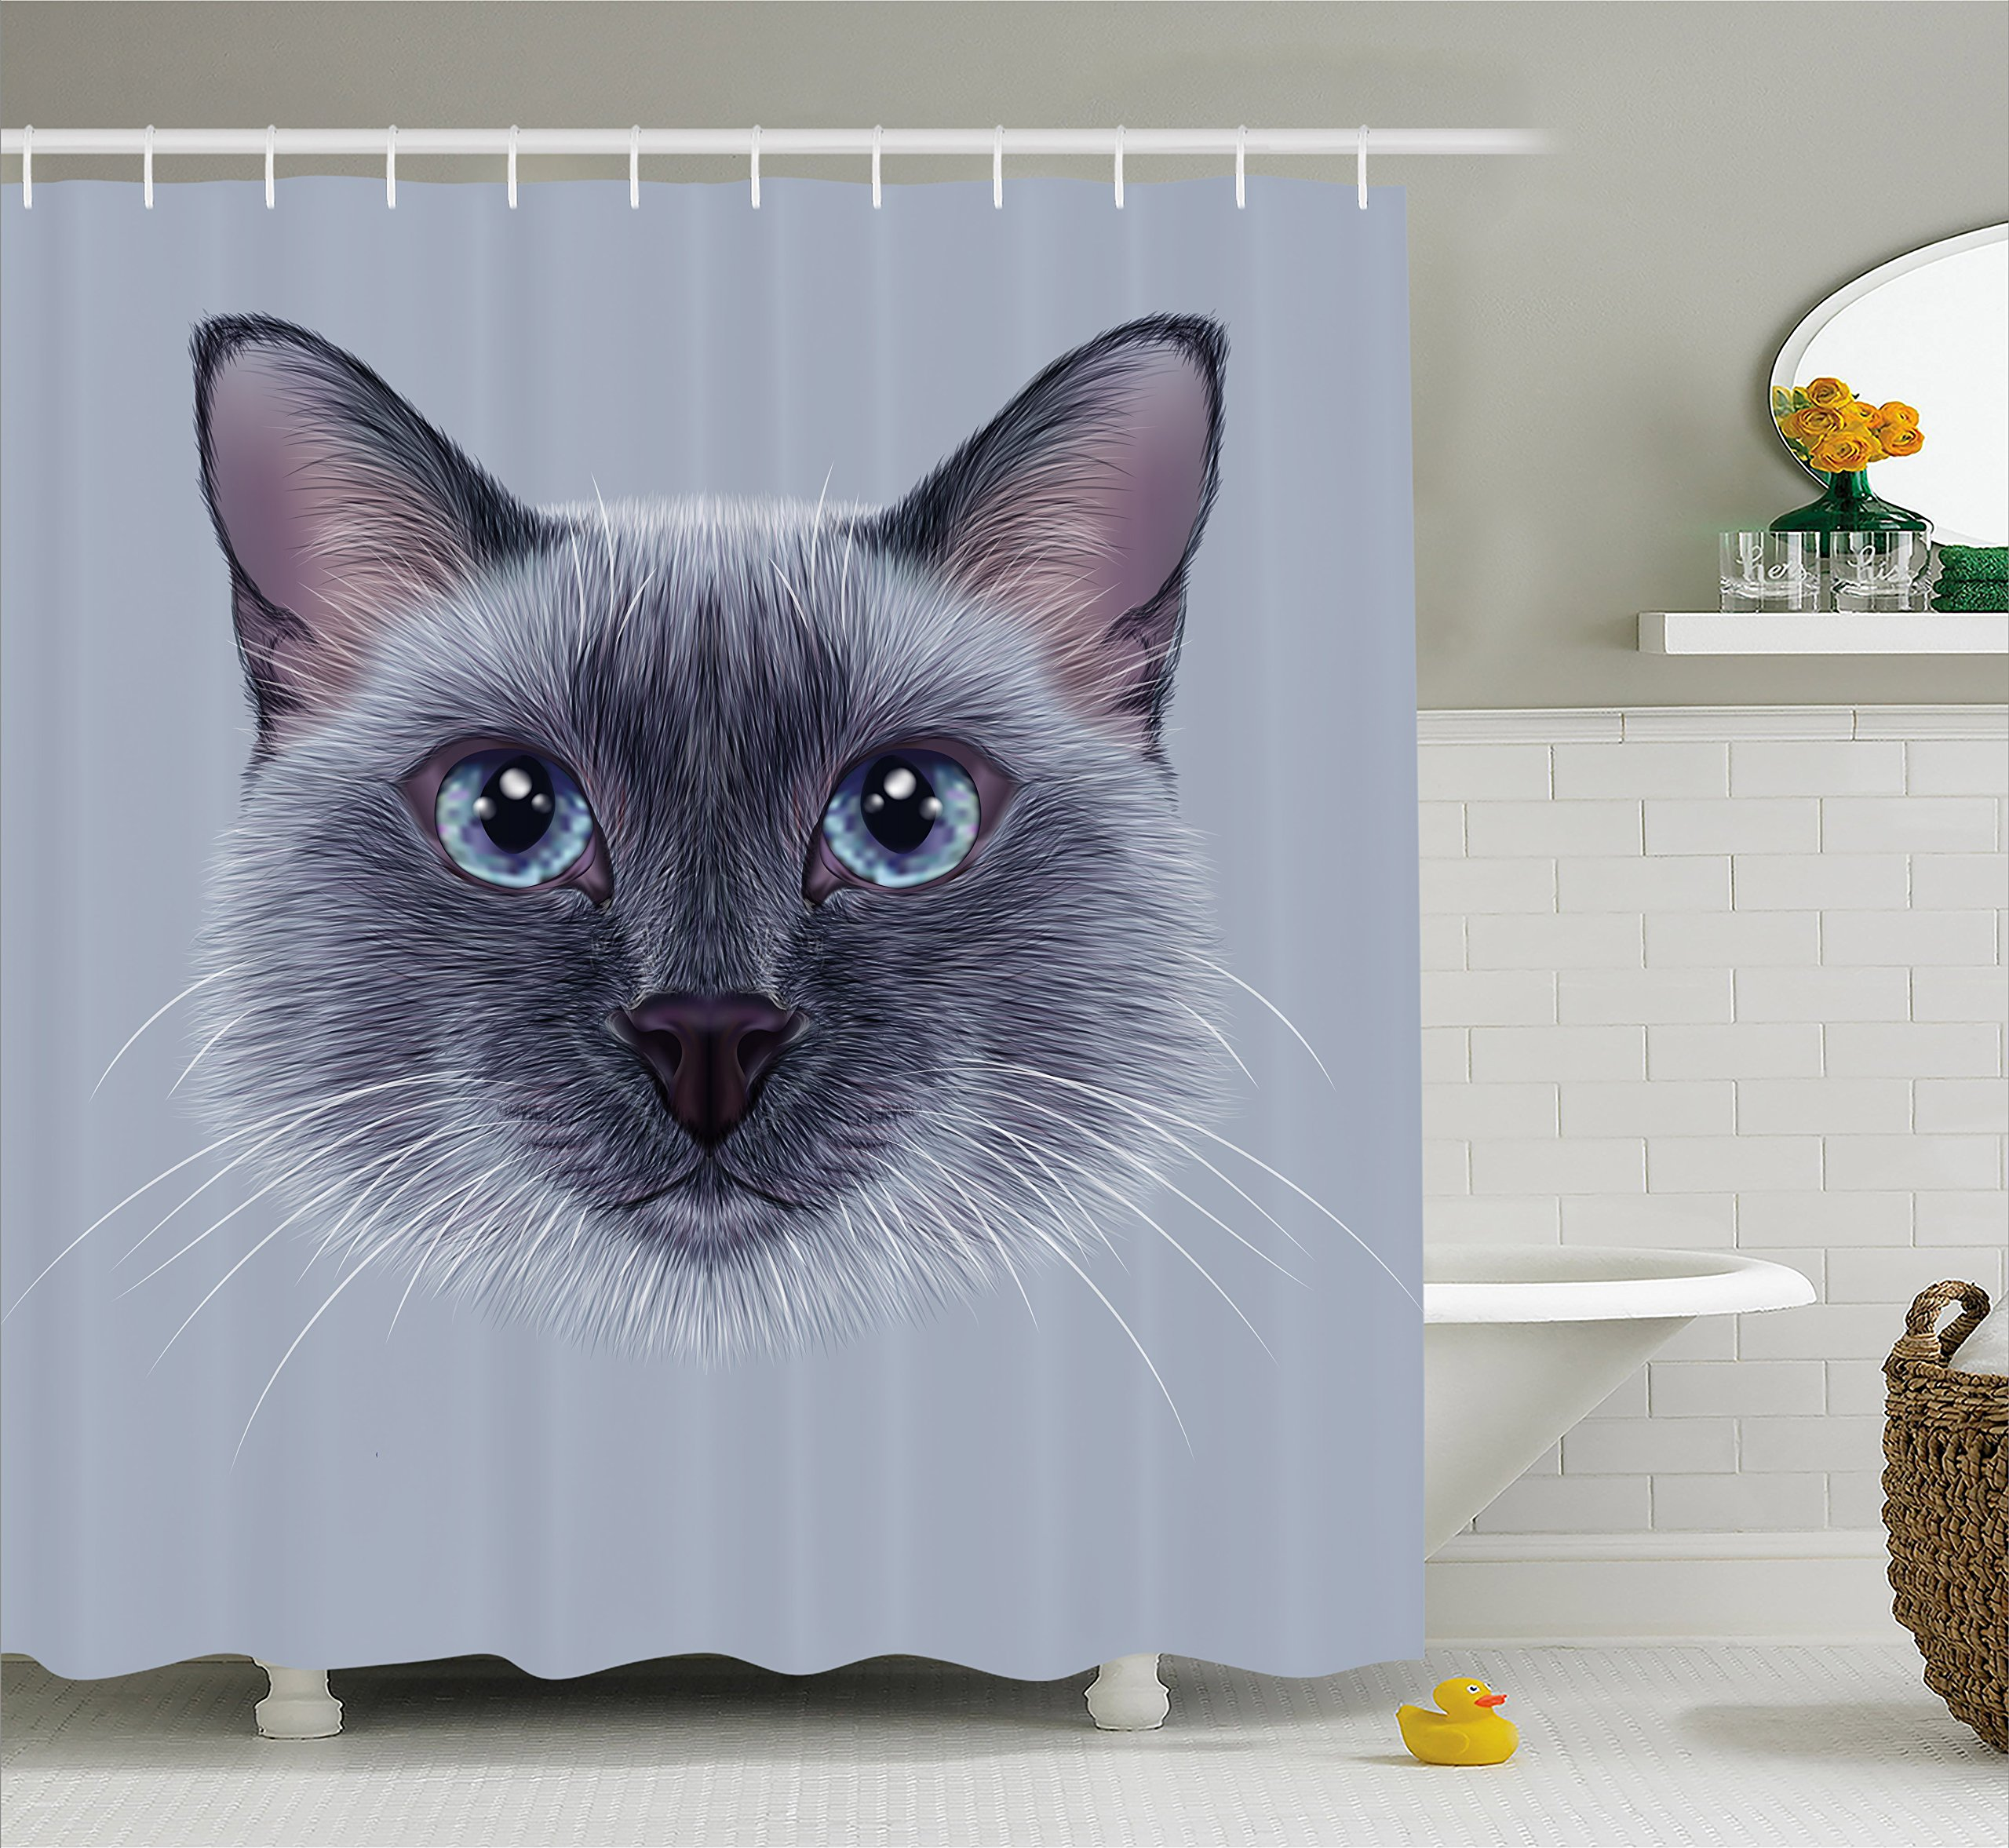 Ambesonne Animal Shower Curtain, Portrait Image of Thai Siamese Cat with Retro Style Lettering Artwork, Fabric Bathroom Decor Set with Hooks, 75 Inches Long, White Sky Blue and Grey by Ambesonne